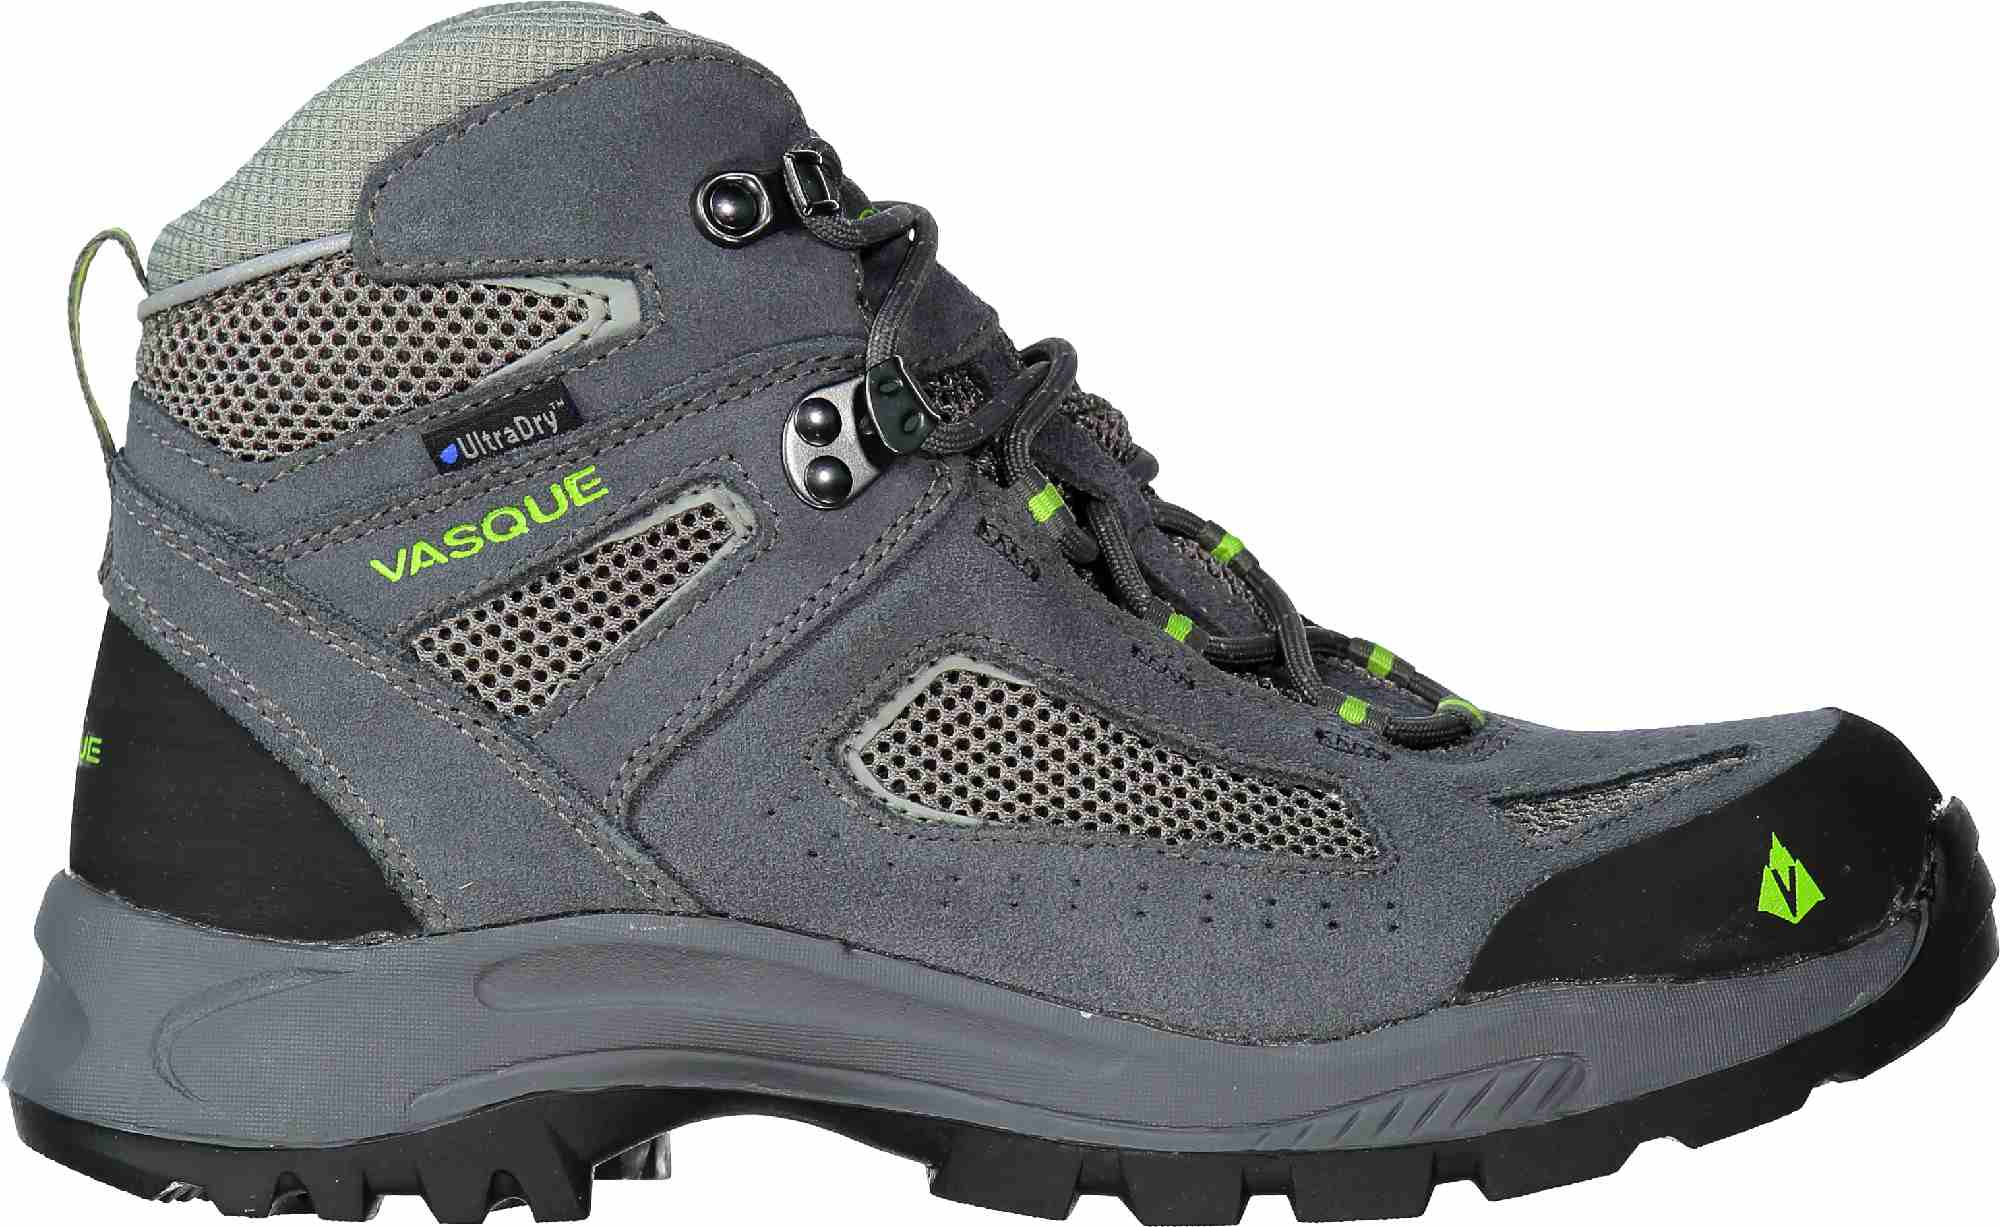 63a60c213ca The 9 Best Waterproof Hiking Boots of 2019